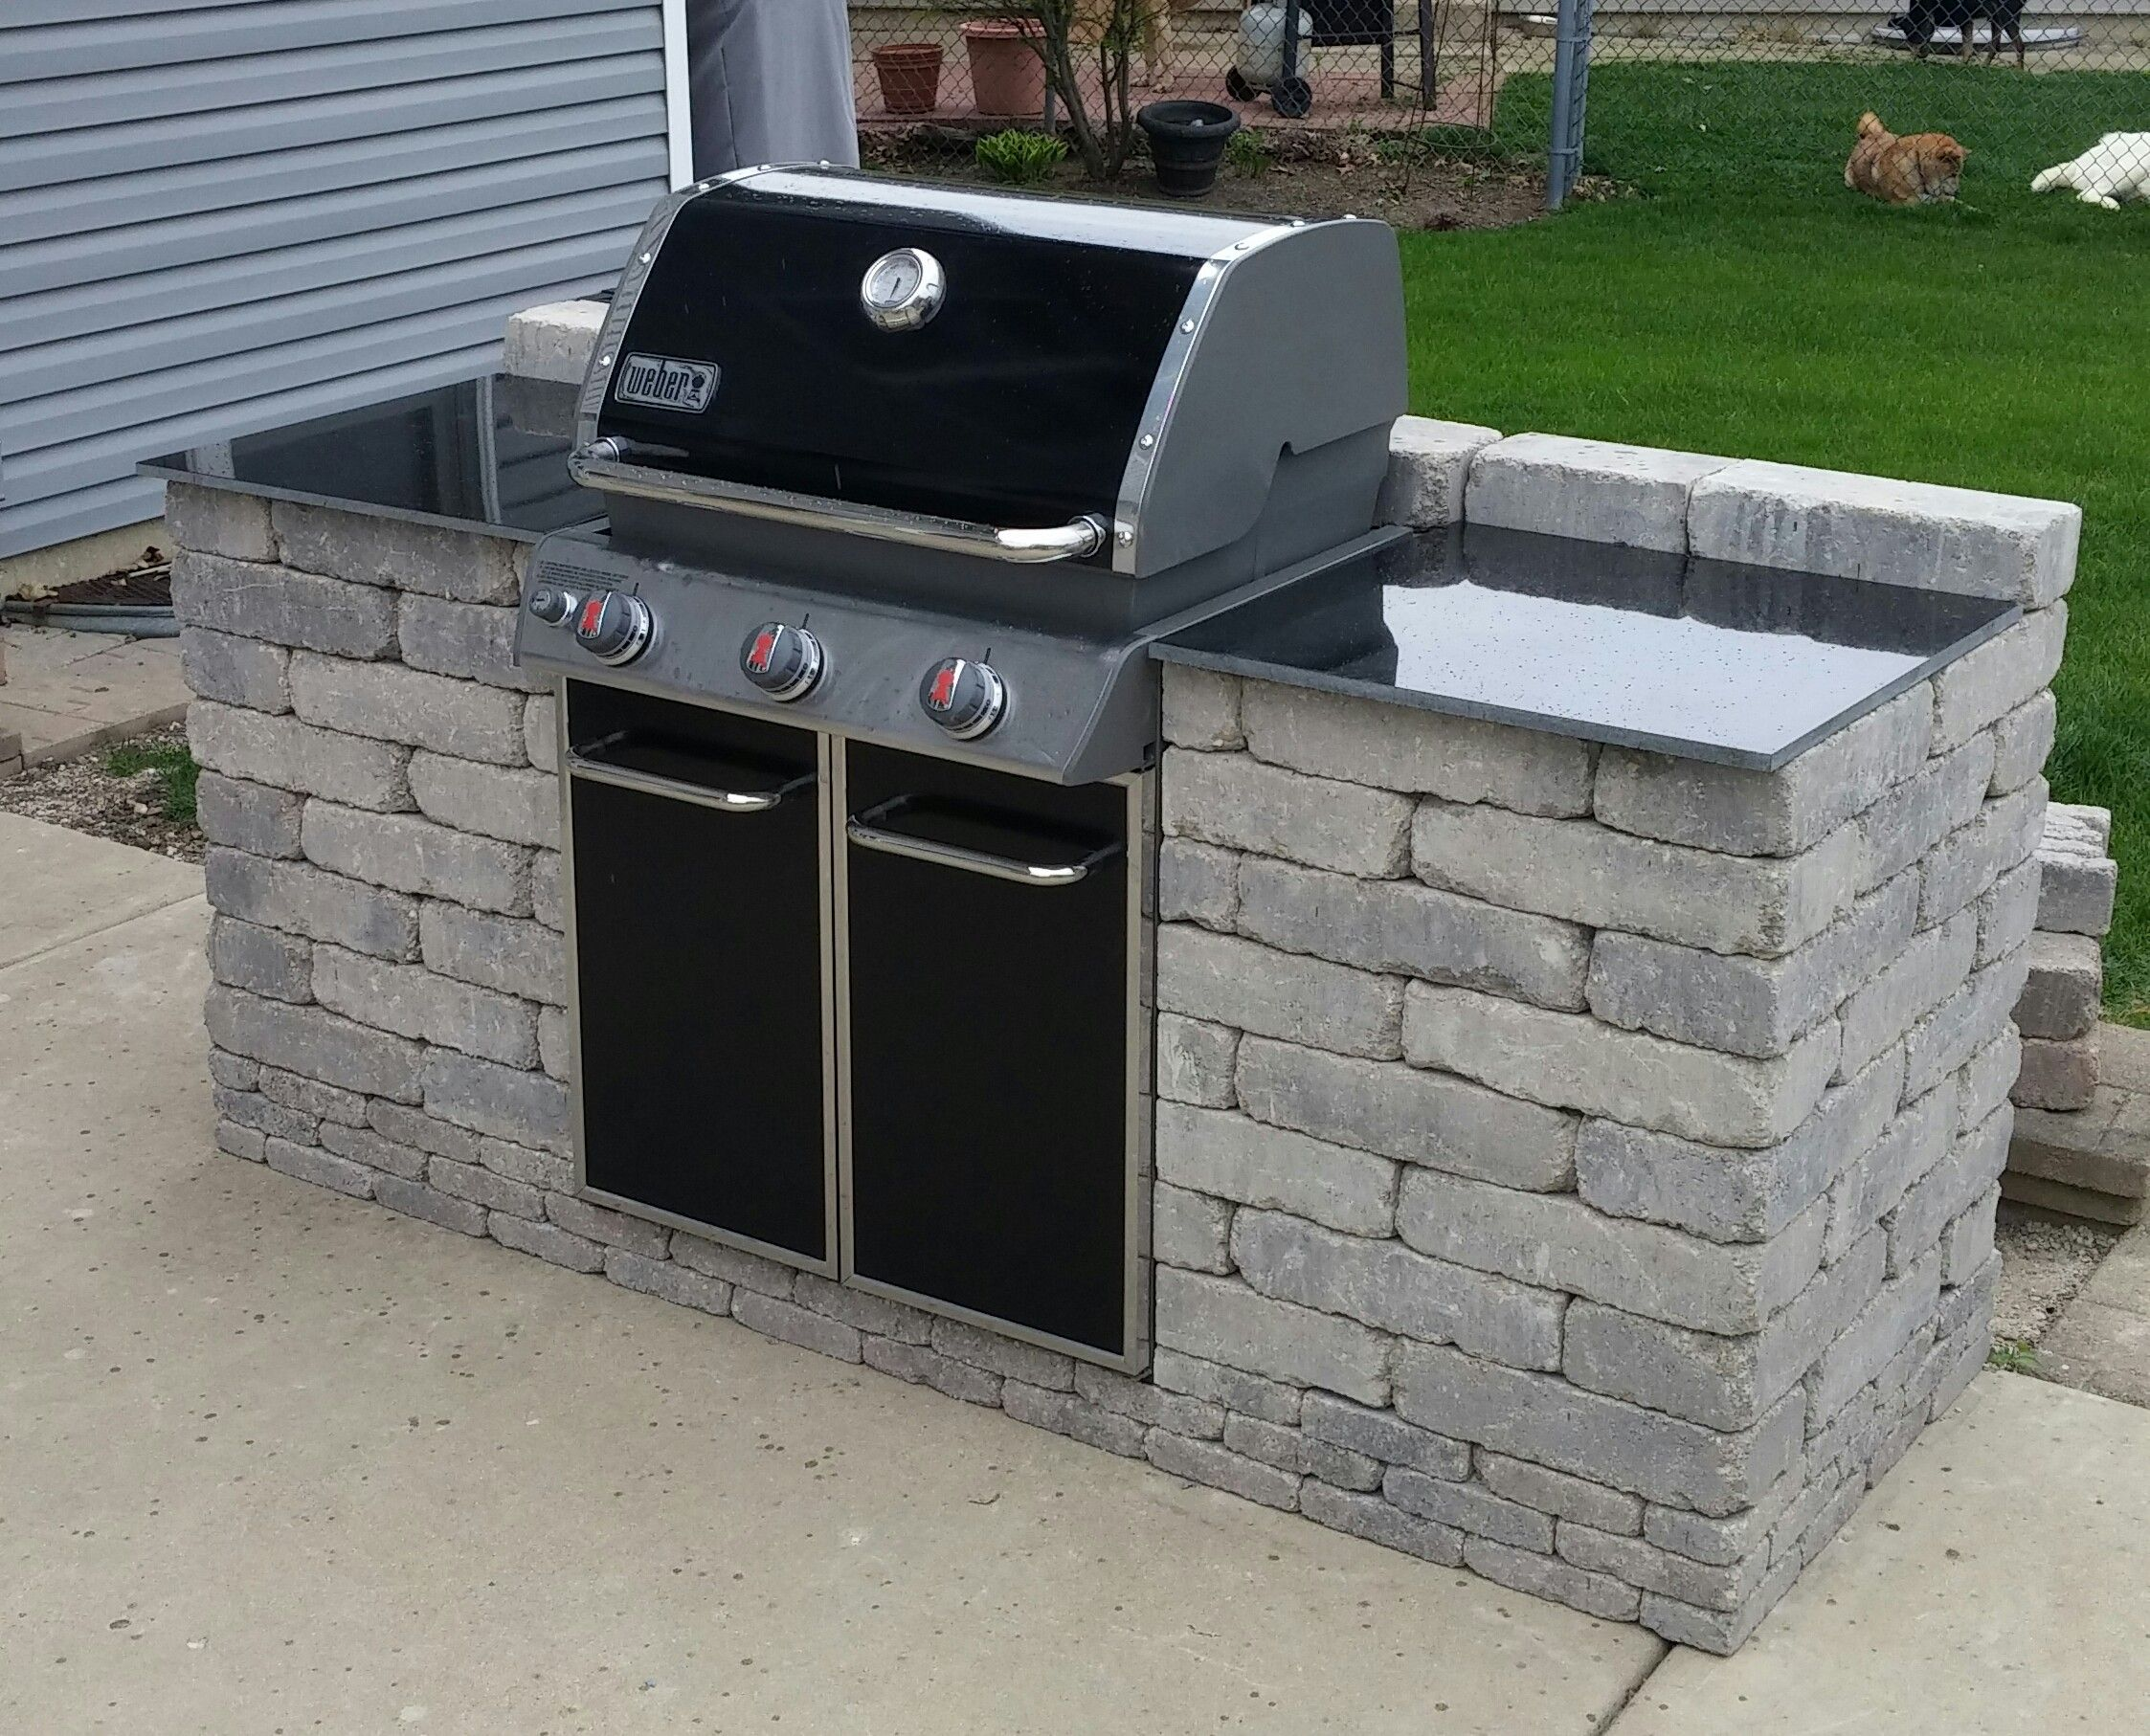 Barbeque grill enclosure projects to try pinterest for Backyard barbecues outdoor kitchen